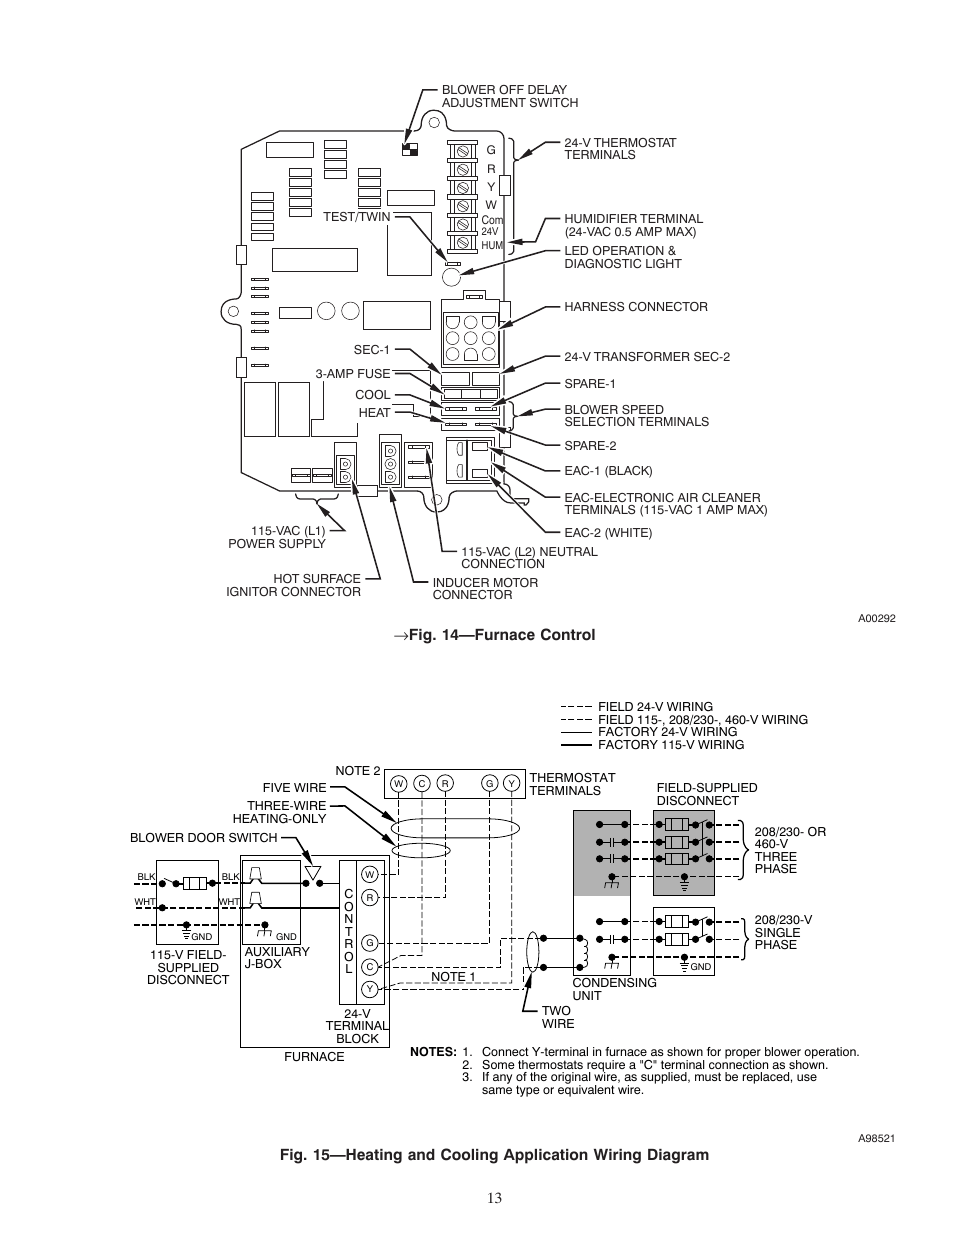 carrier weathermaker 8000 58zav page13?resize\\\\\\\=665%2C861 intertherm electric furnace wiring diagram & intertherm electric general electric furnace wiring diagram at gsmx.co